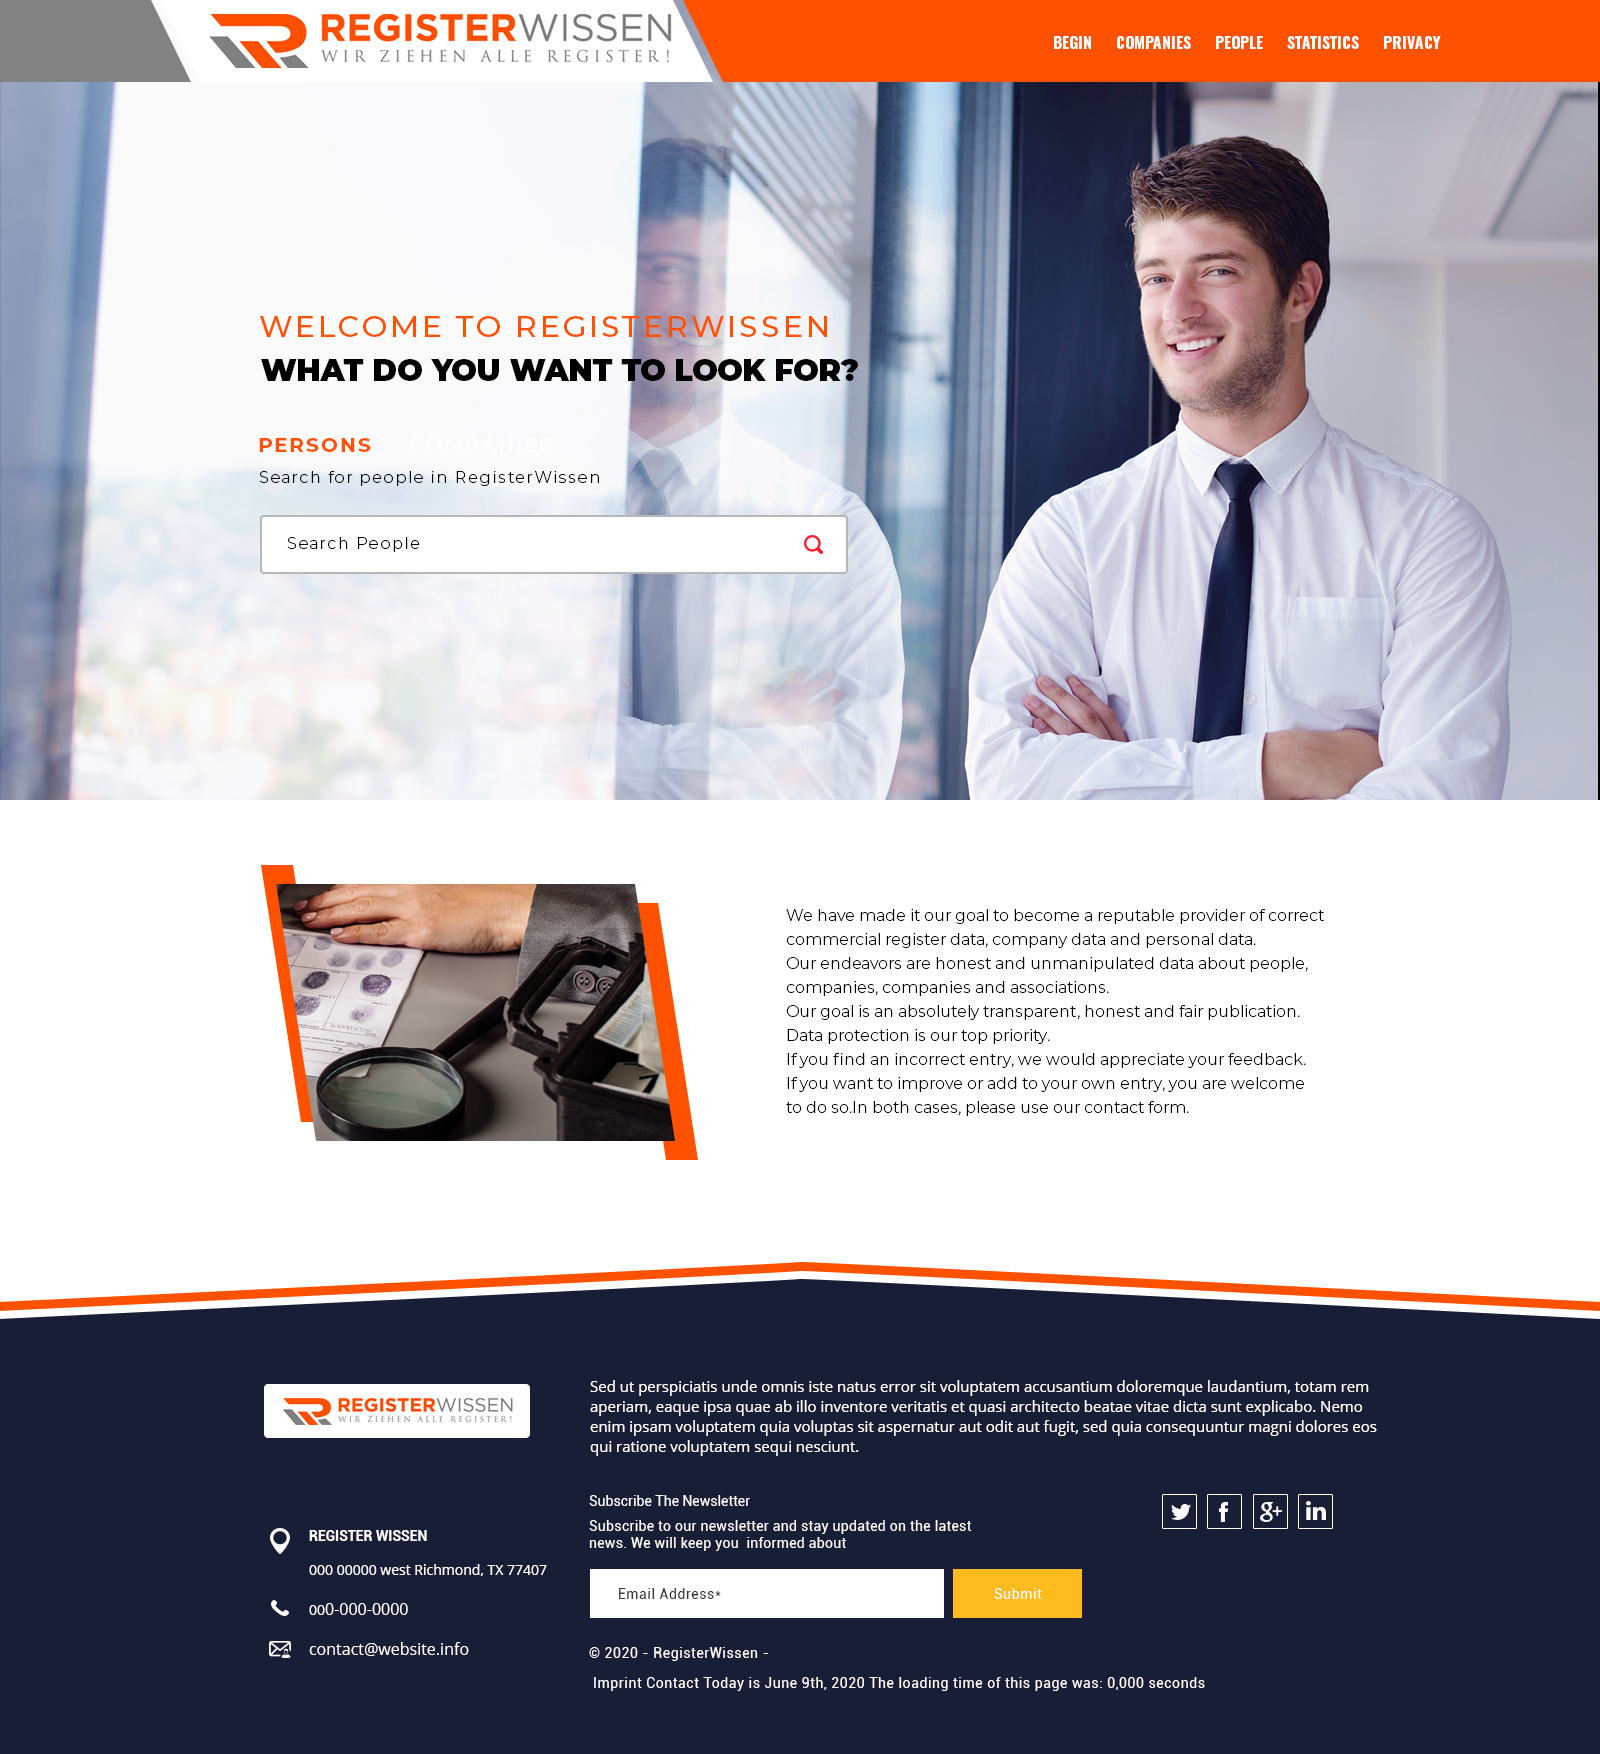 Professional Serious Internet Web Design For Sephito Gmbh By Lemosys Infotech Design 24661025